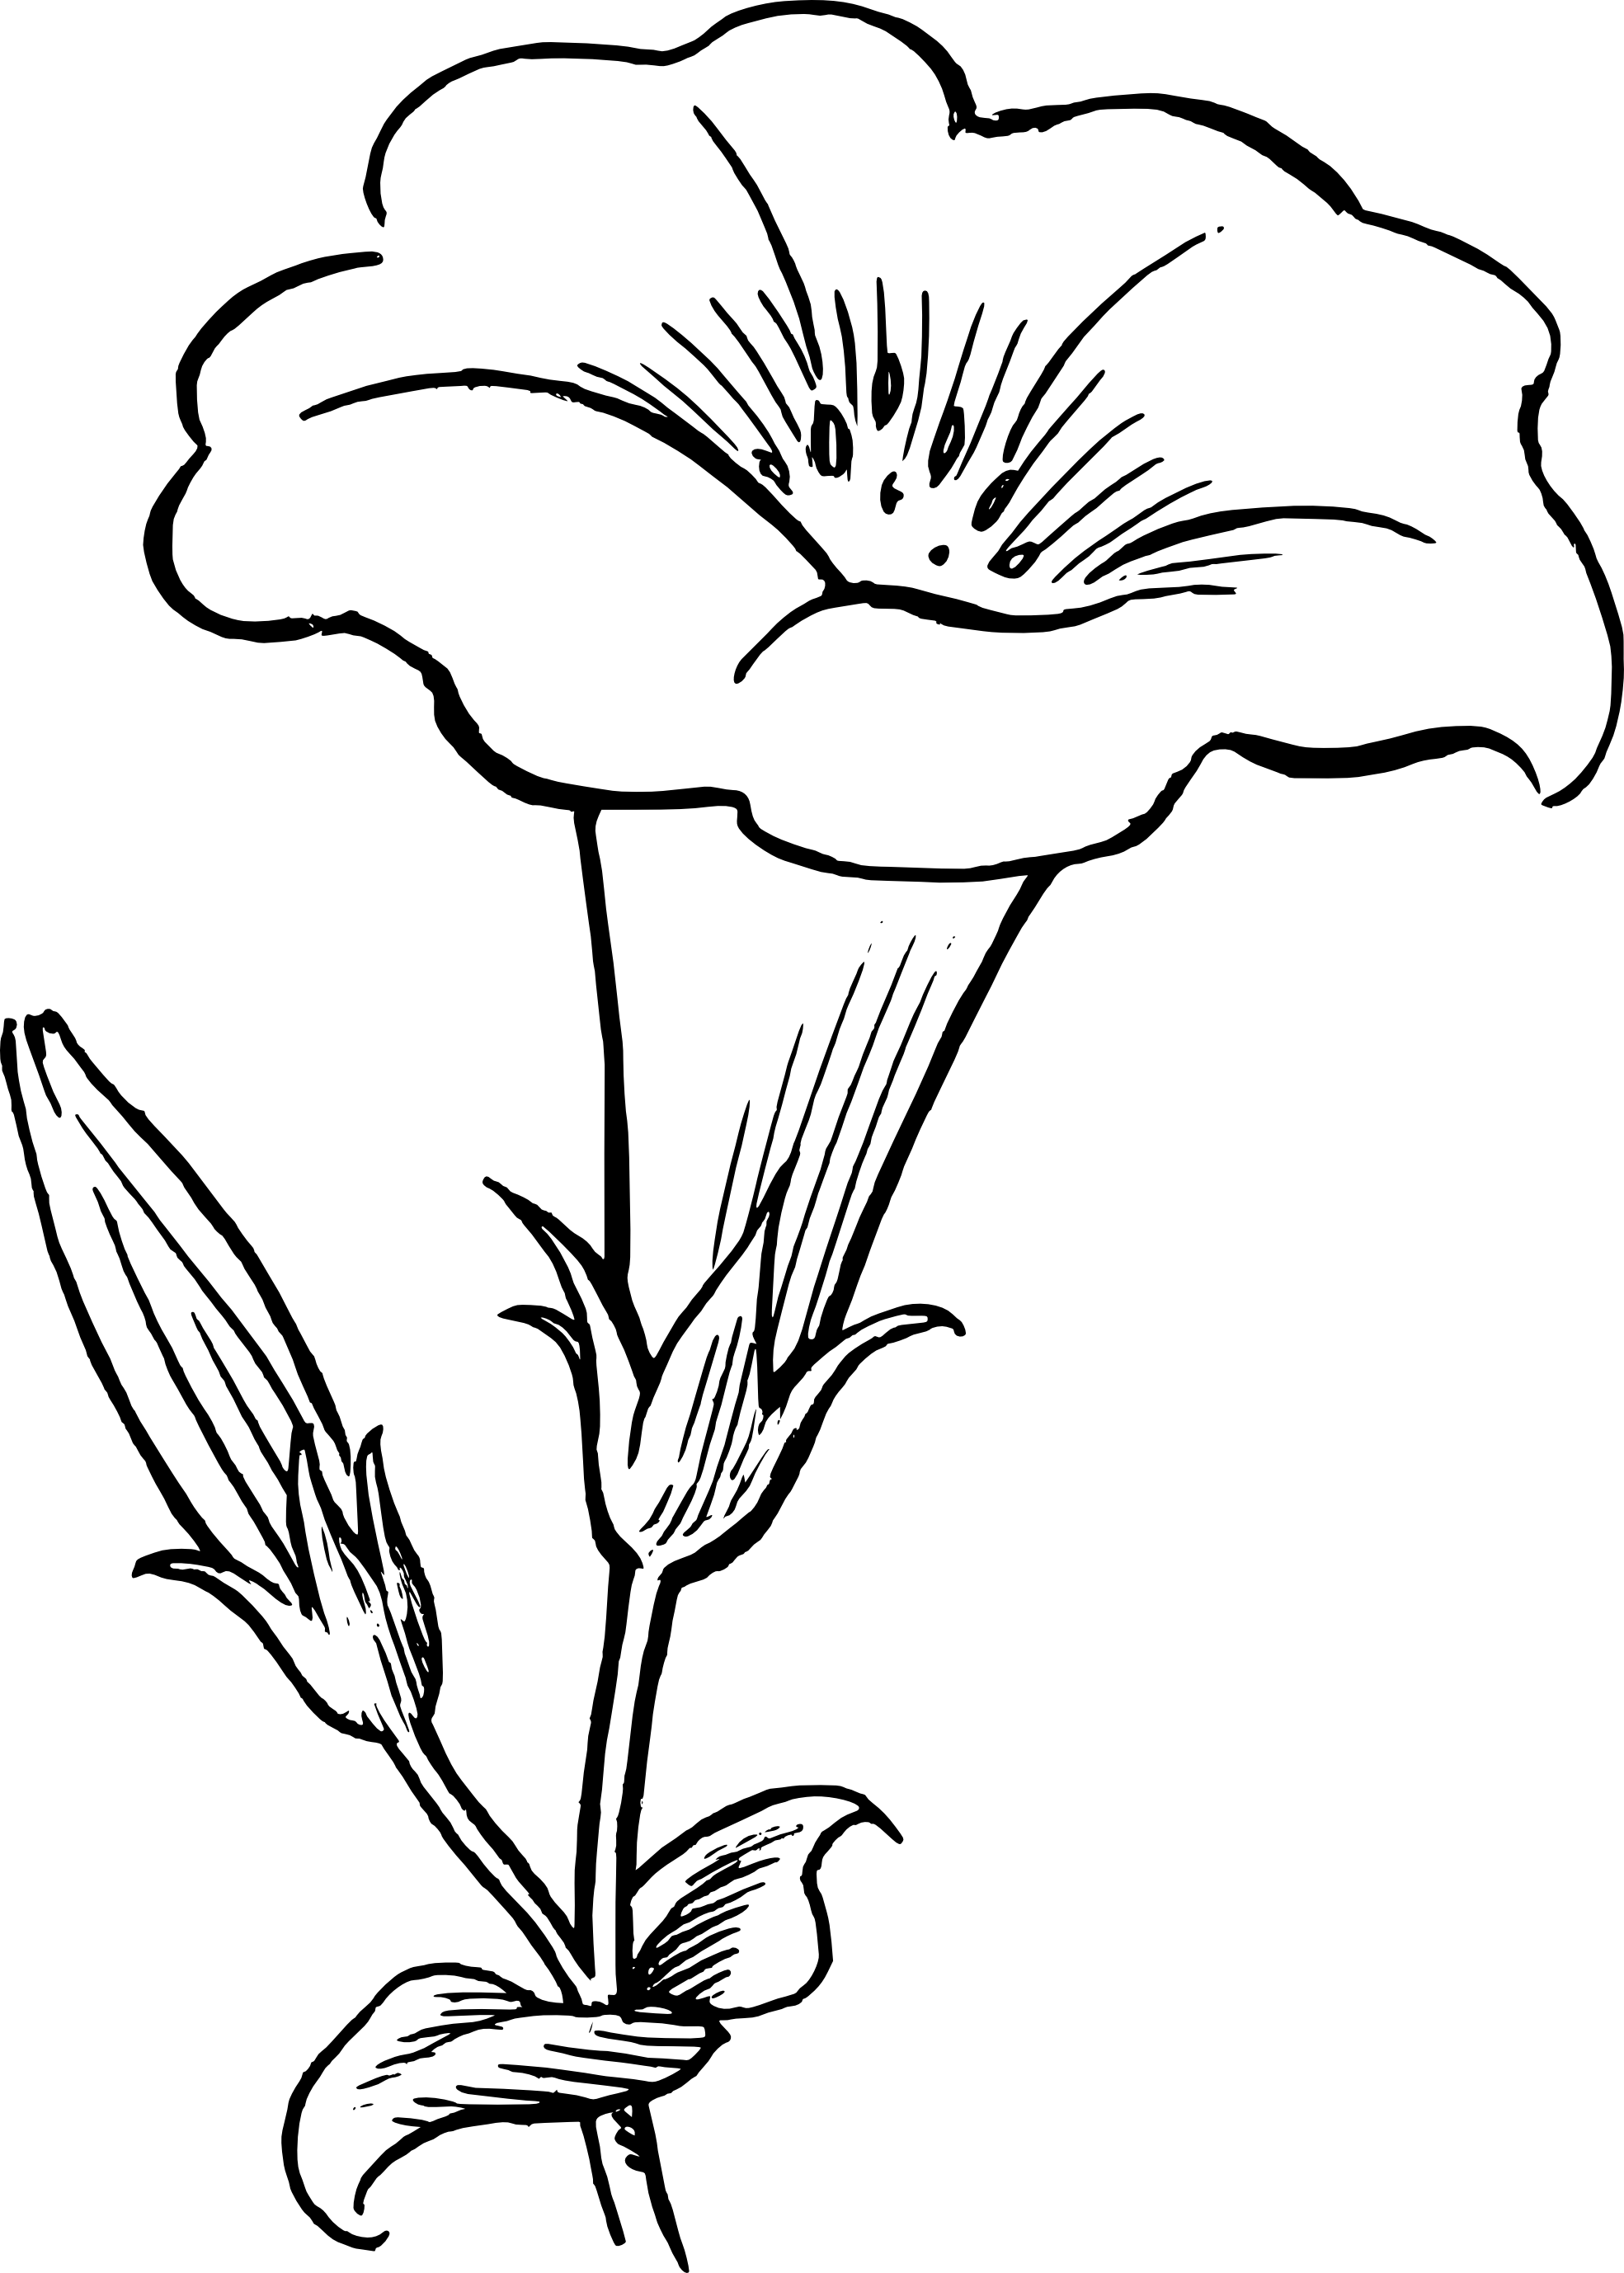 Line Art Flower Drawing : Flower line drawings free clipart best